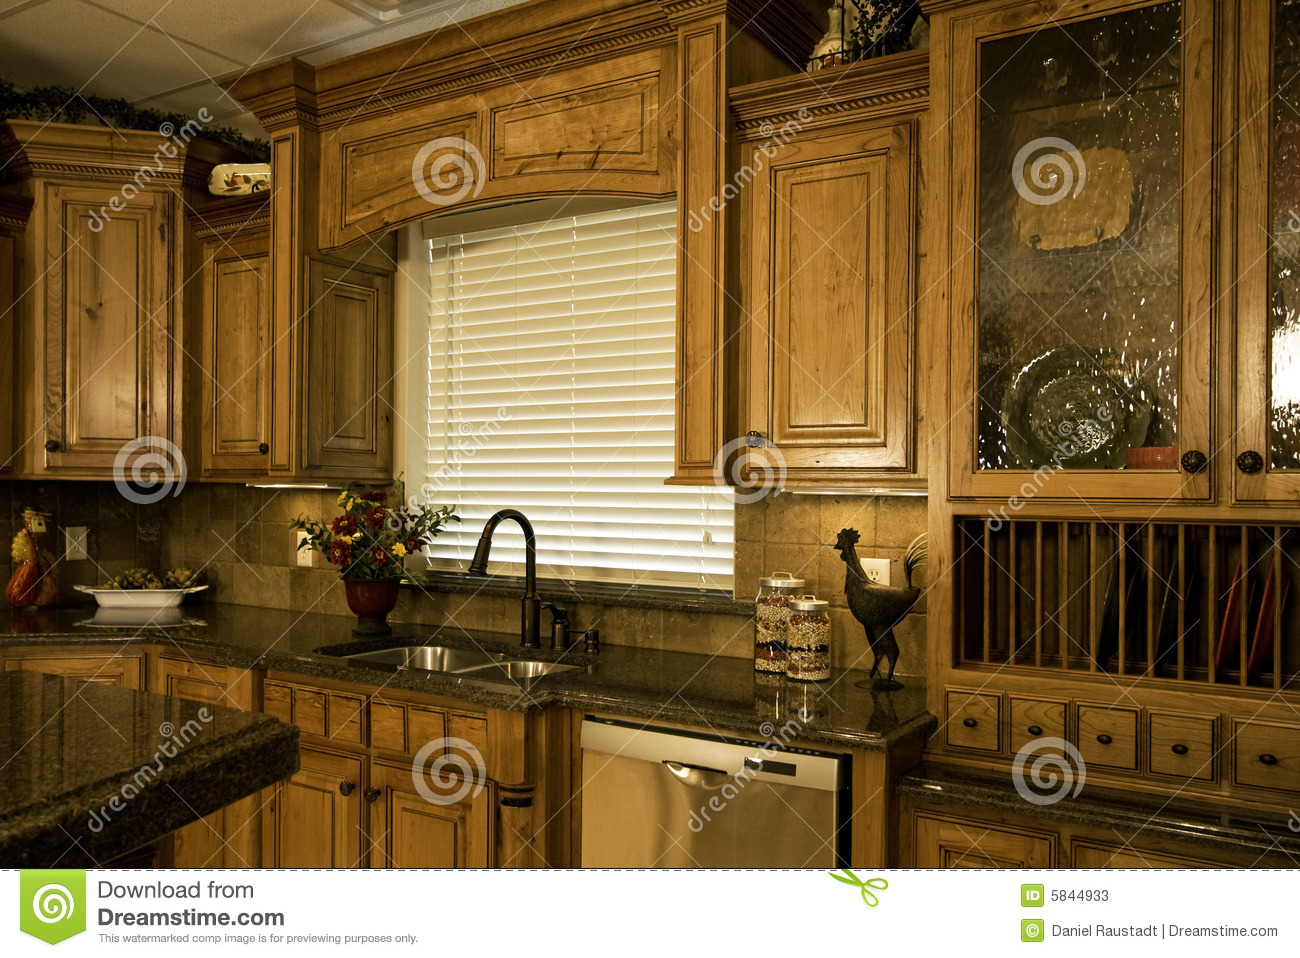 Organized Luxury Kitchen Stock Photos Image 5844933